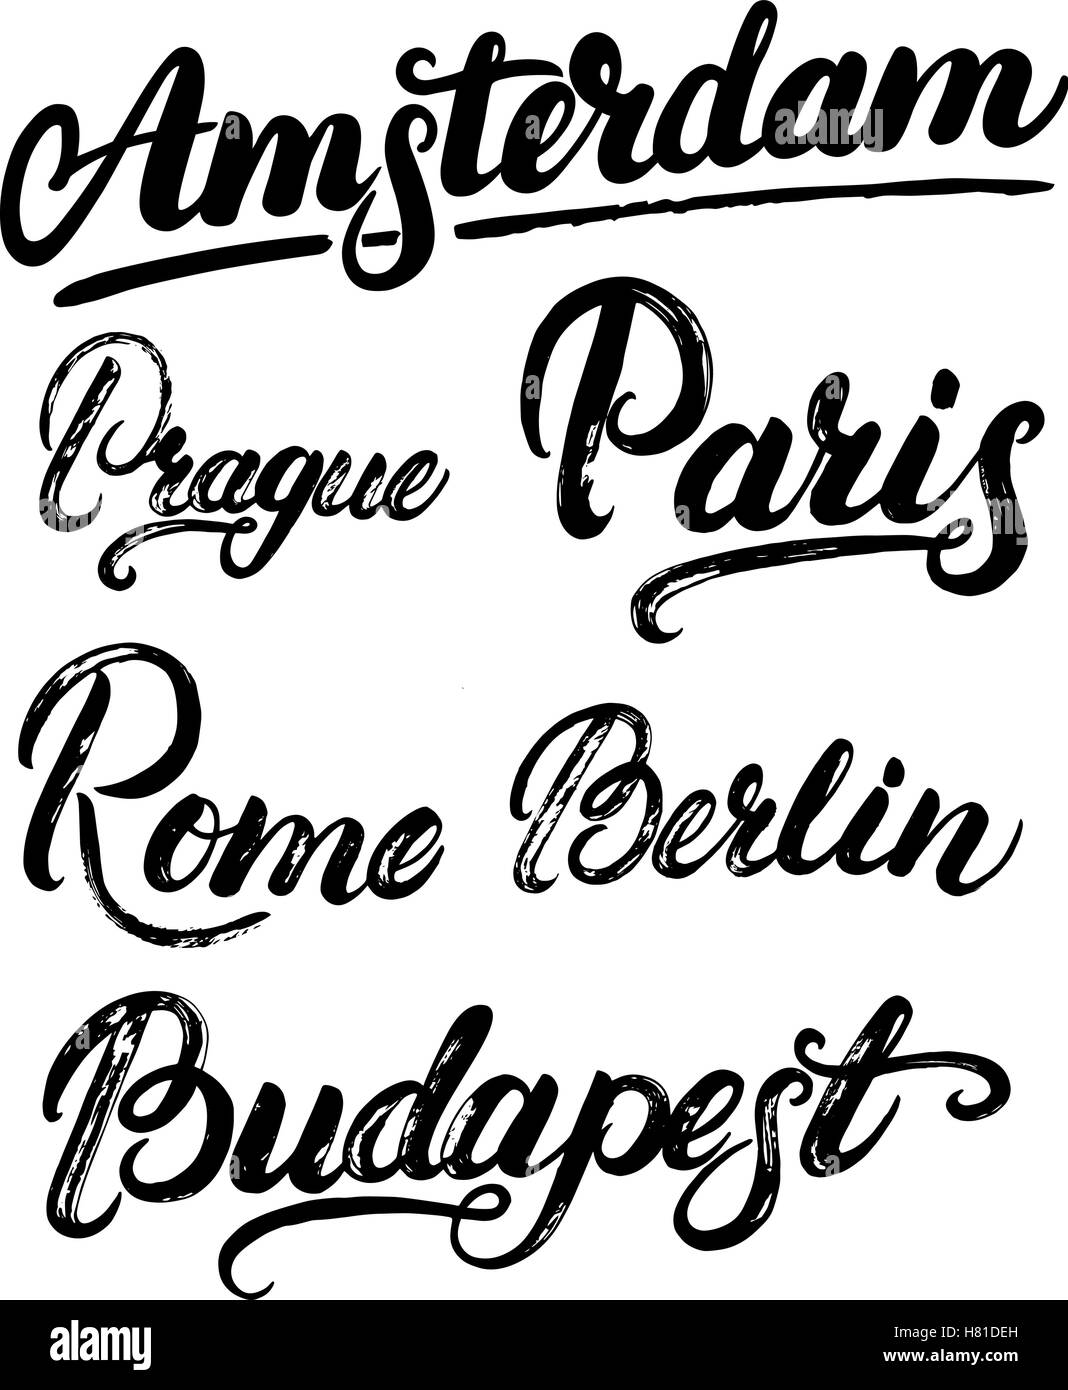 Collection Of European Capitals Amsterdam Berlin Paris Rome Prague Budapest City Names Hand Written Lettering Modern Brus